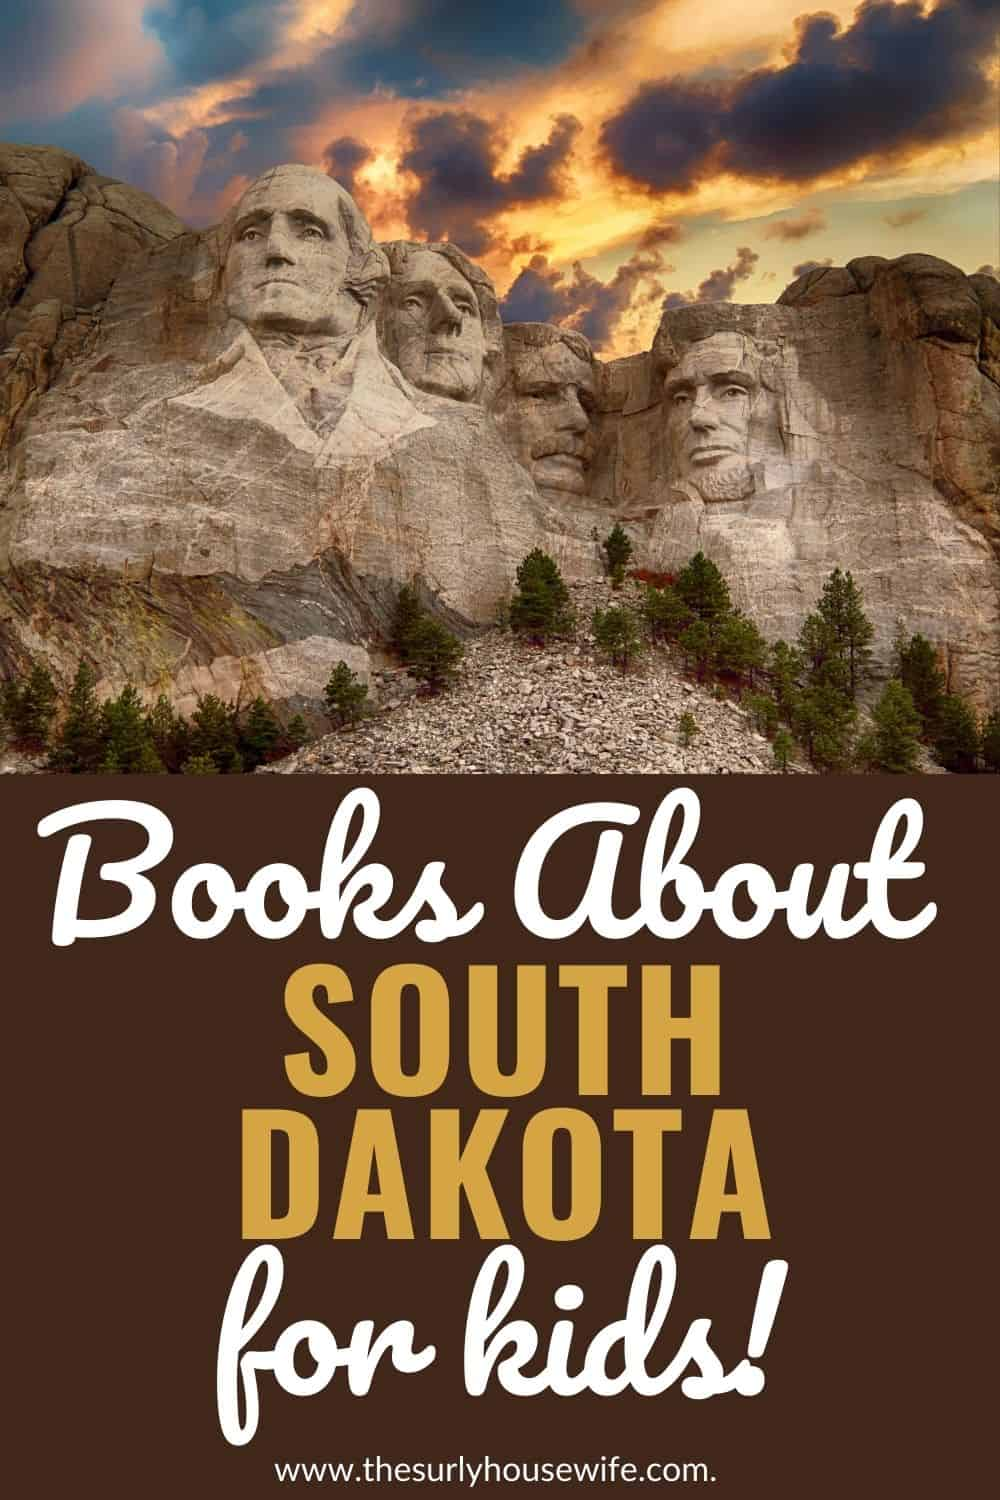 Looking for books about South Dakota? Check out this post! It contains children's books, chapter books, and picture books about South Dakota